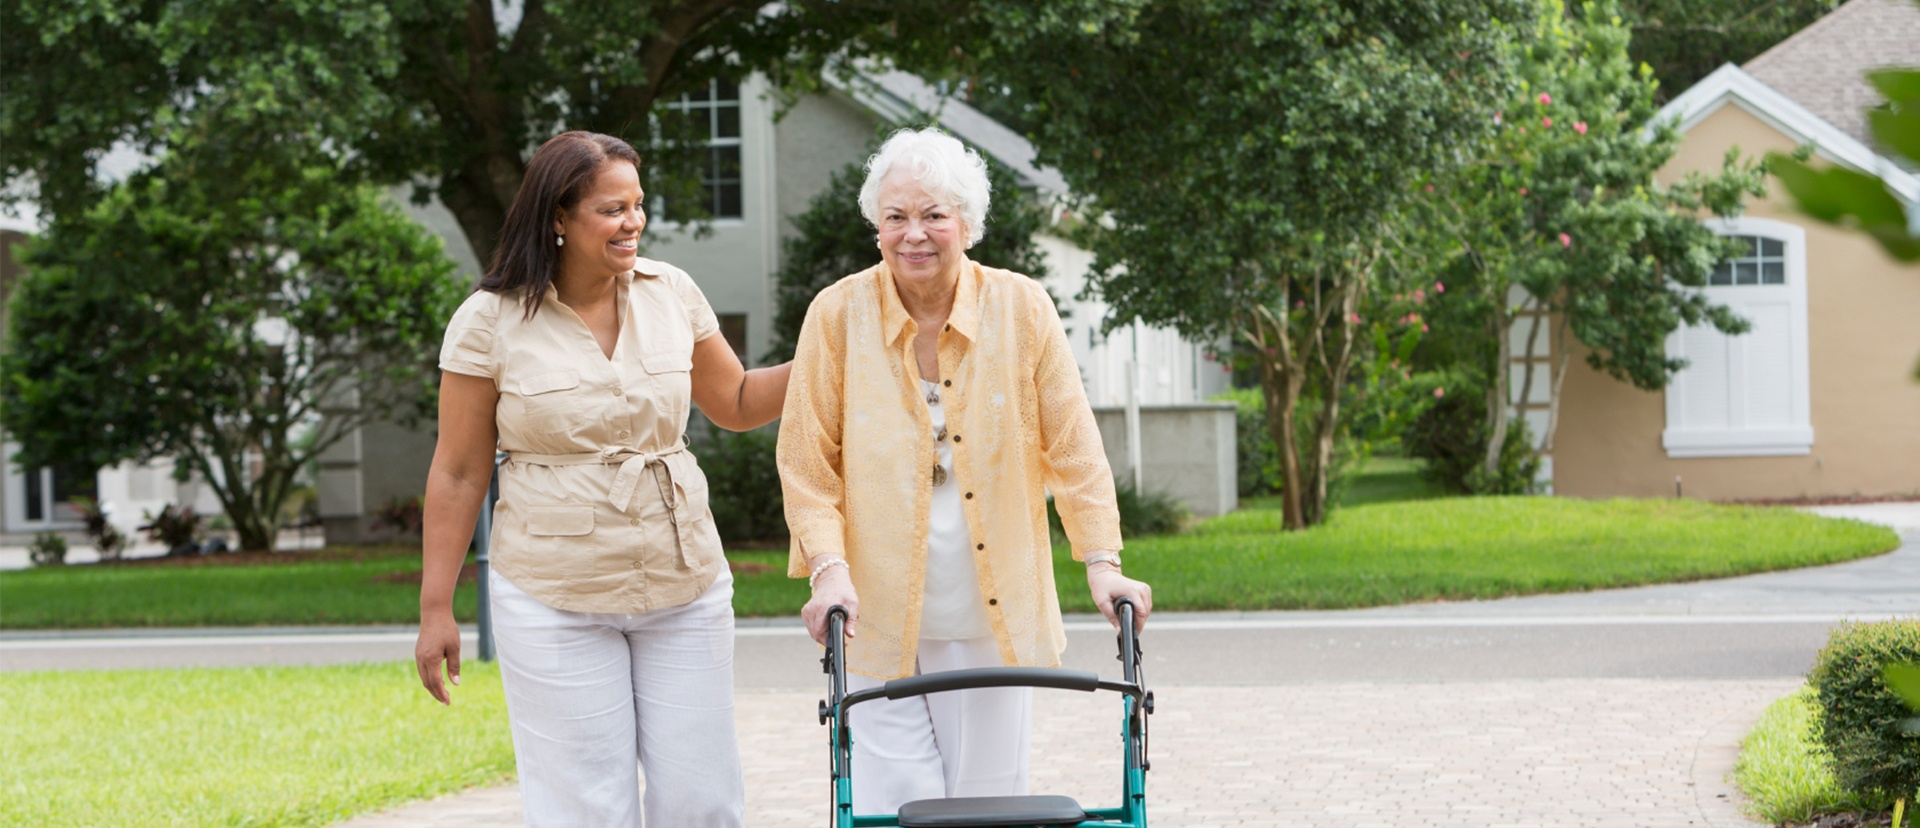 Main Jobs of a Home Health Aide